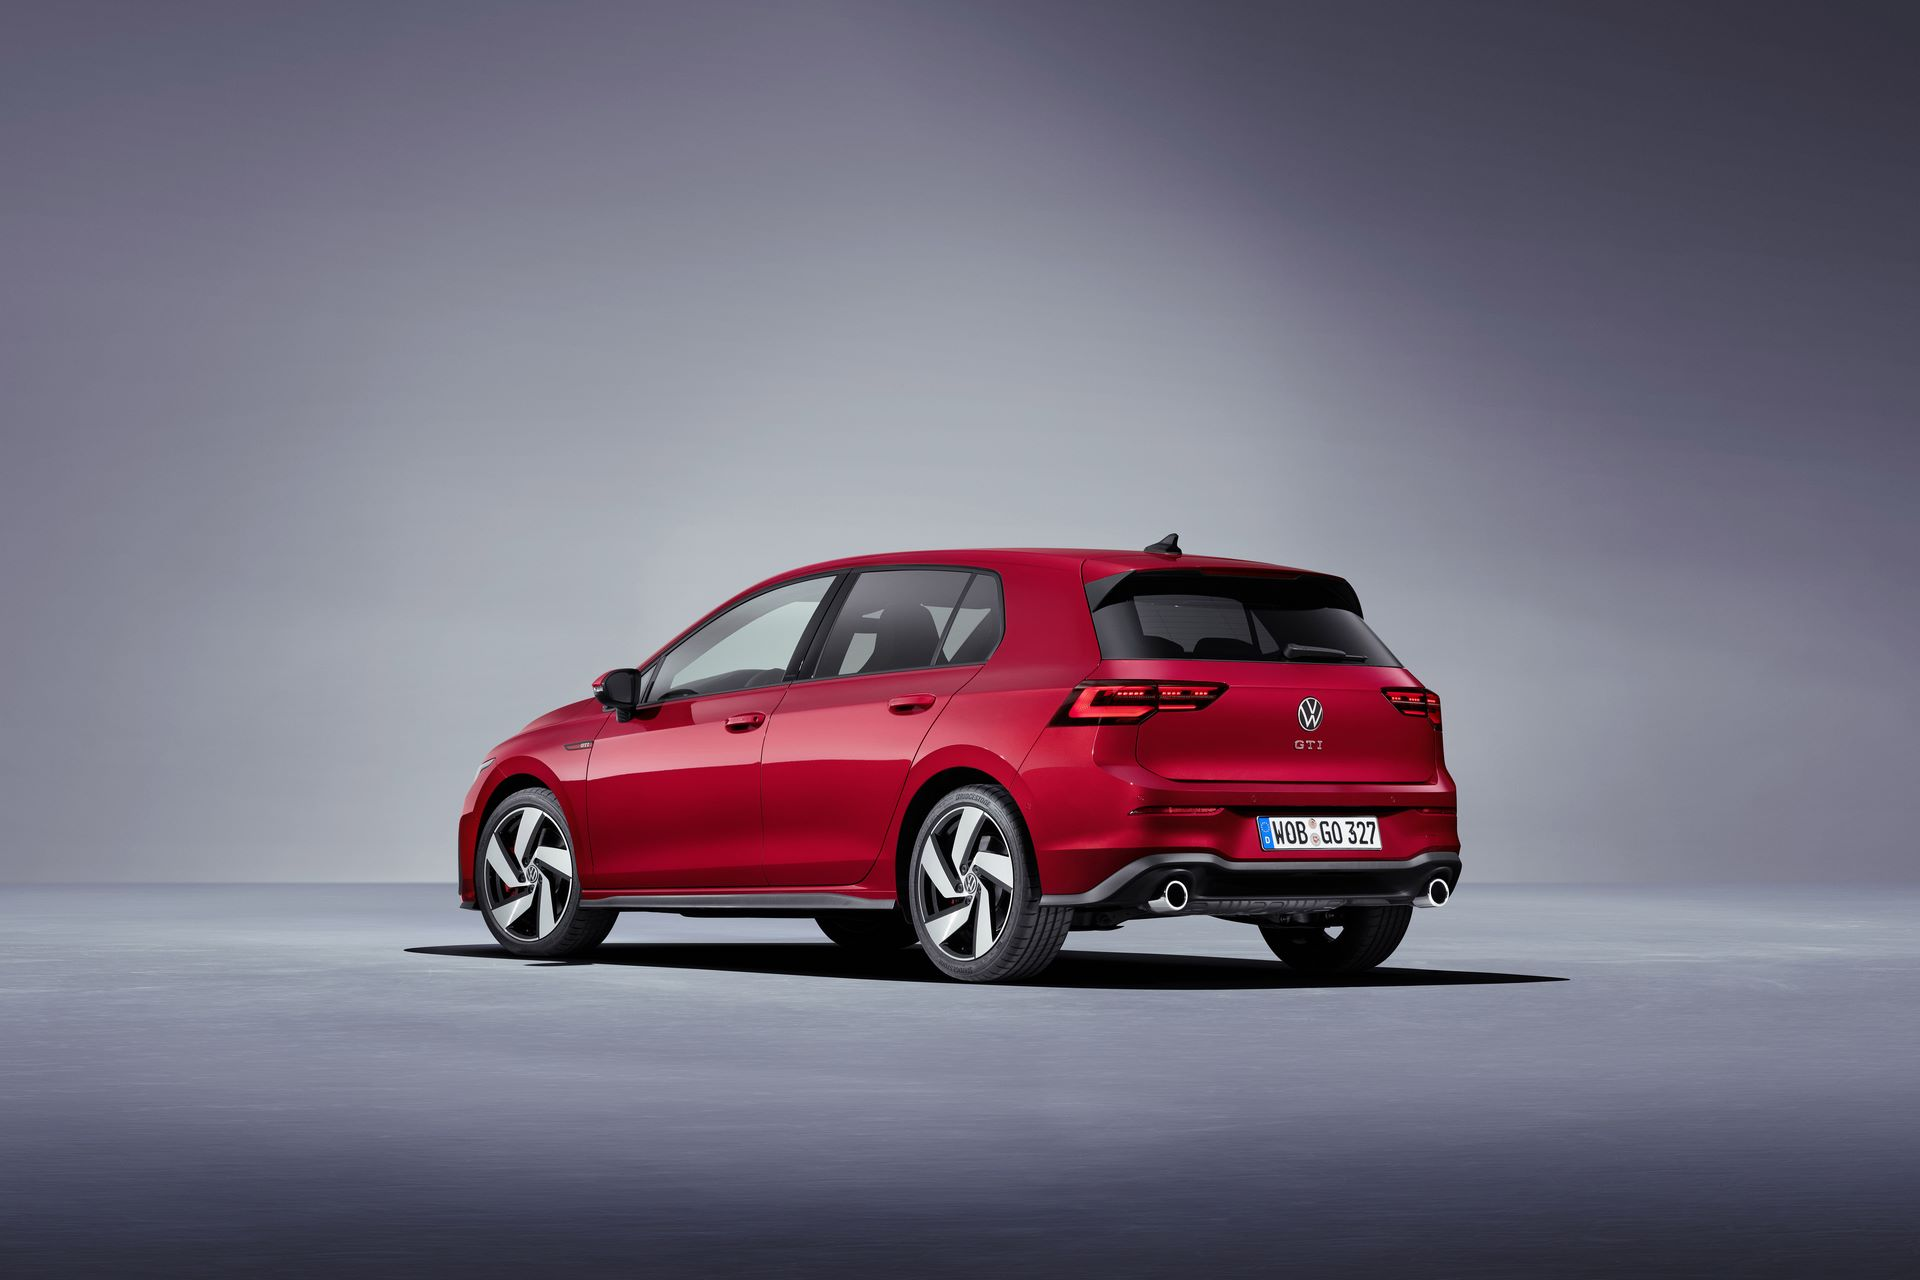 The new Volkswagen Golf GTI